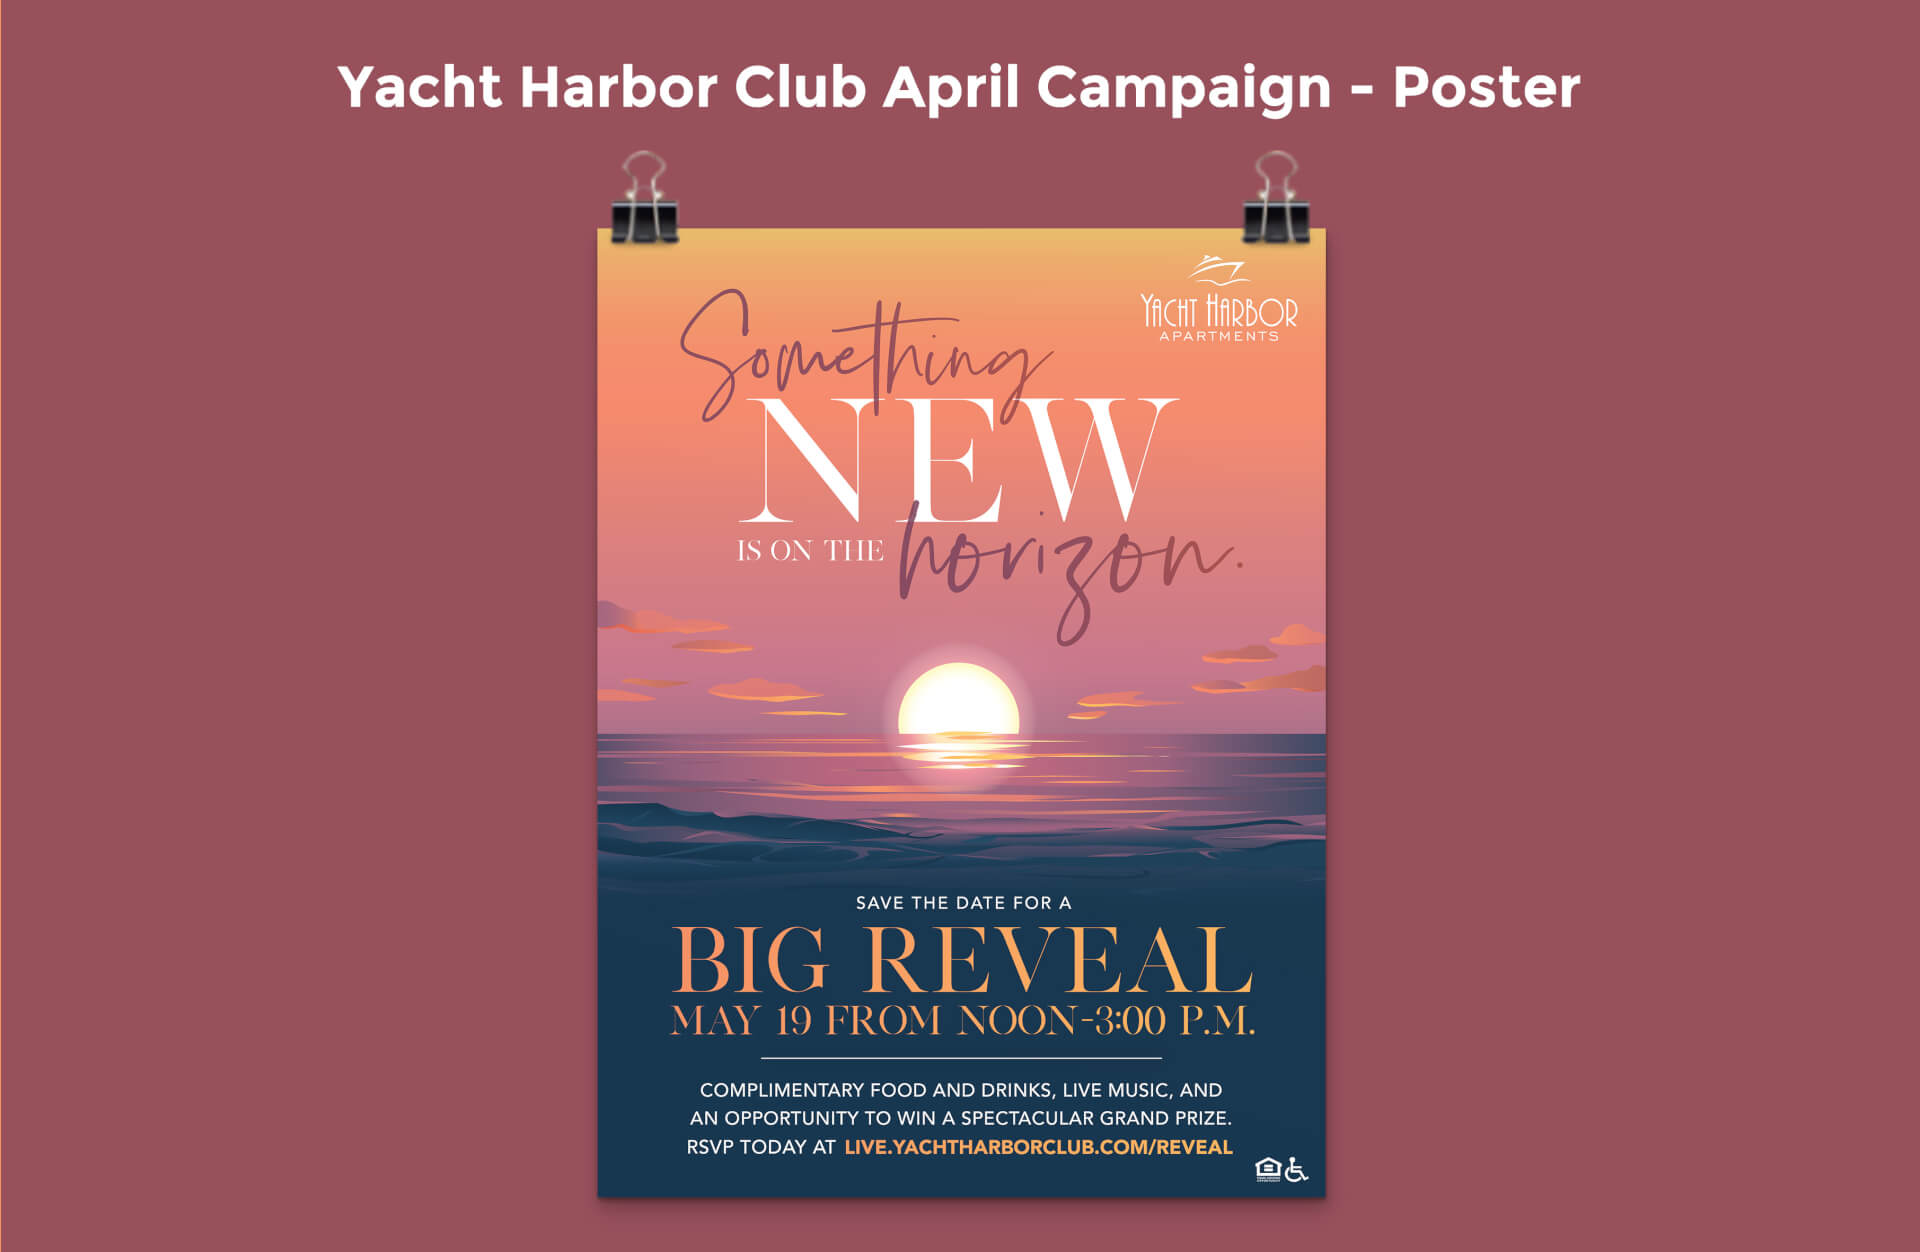 Yacht Harbor Club April Campaign Poster